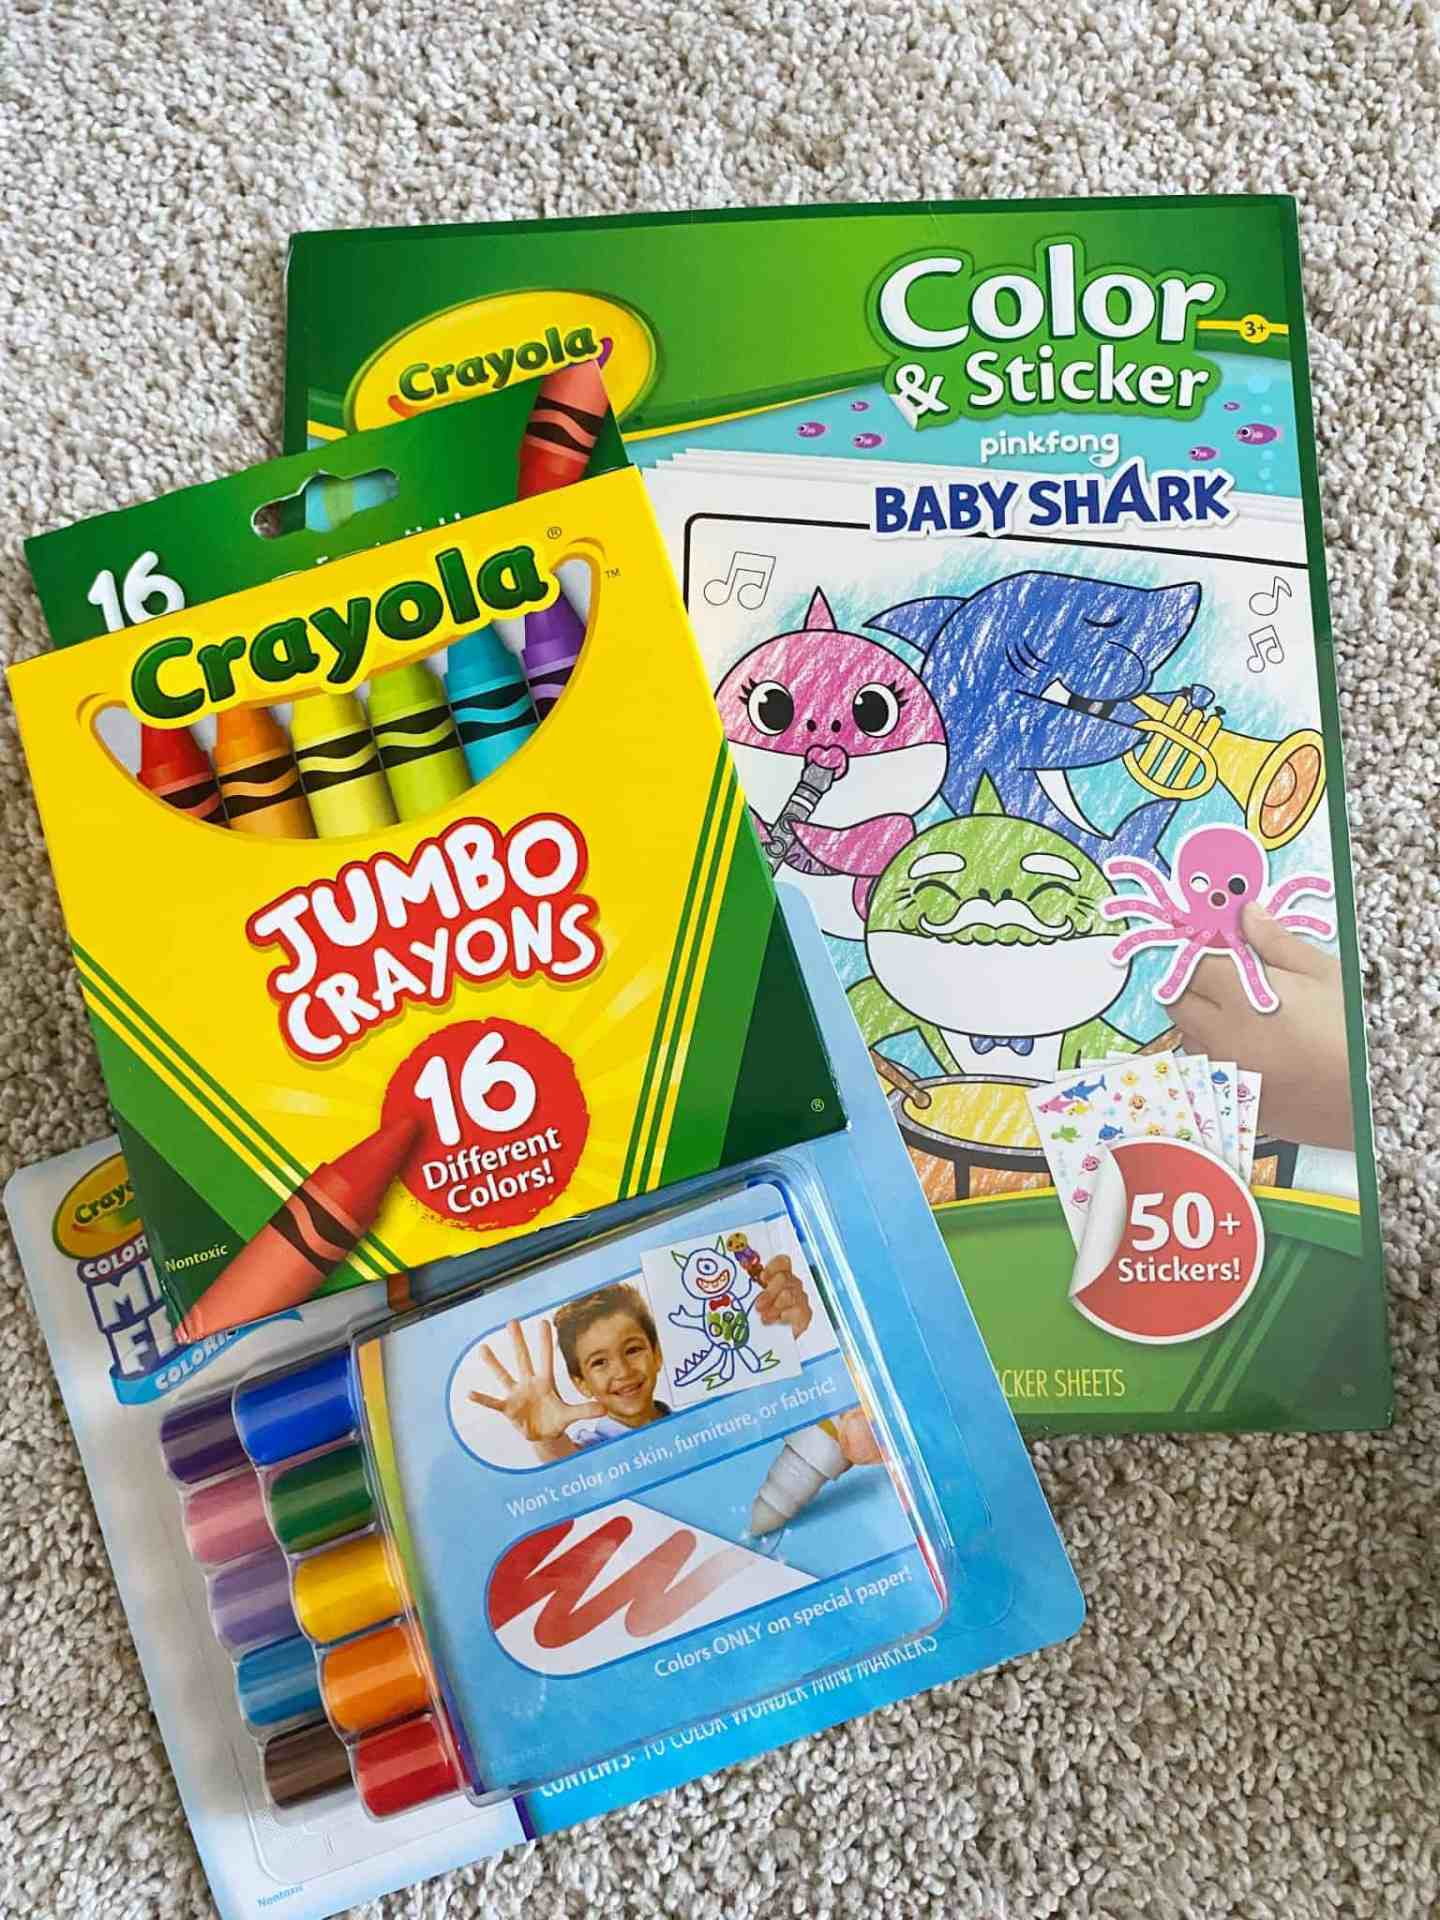 Crayons-as-stocking-stuffers